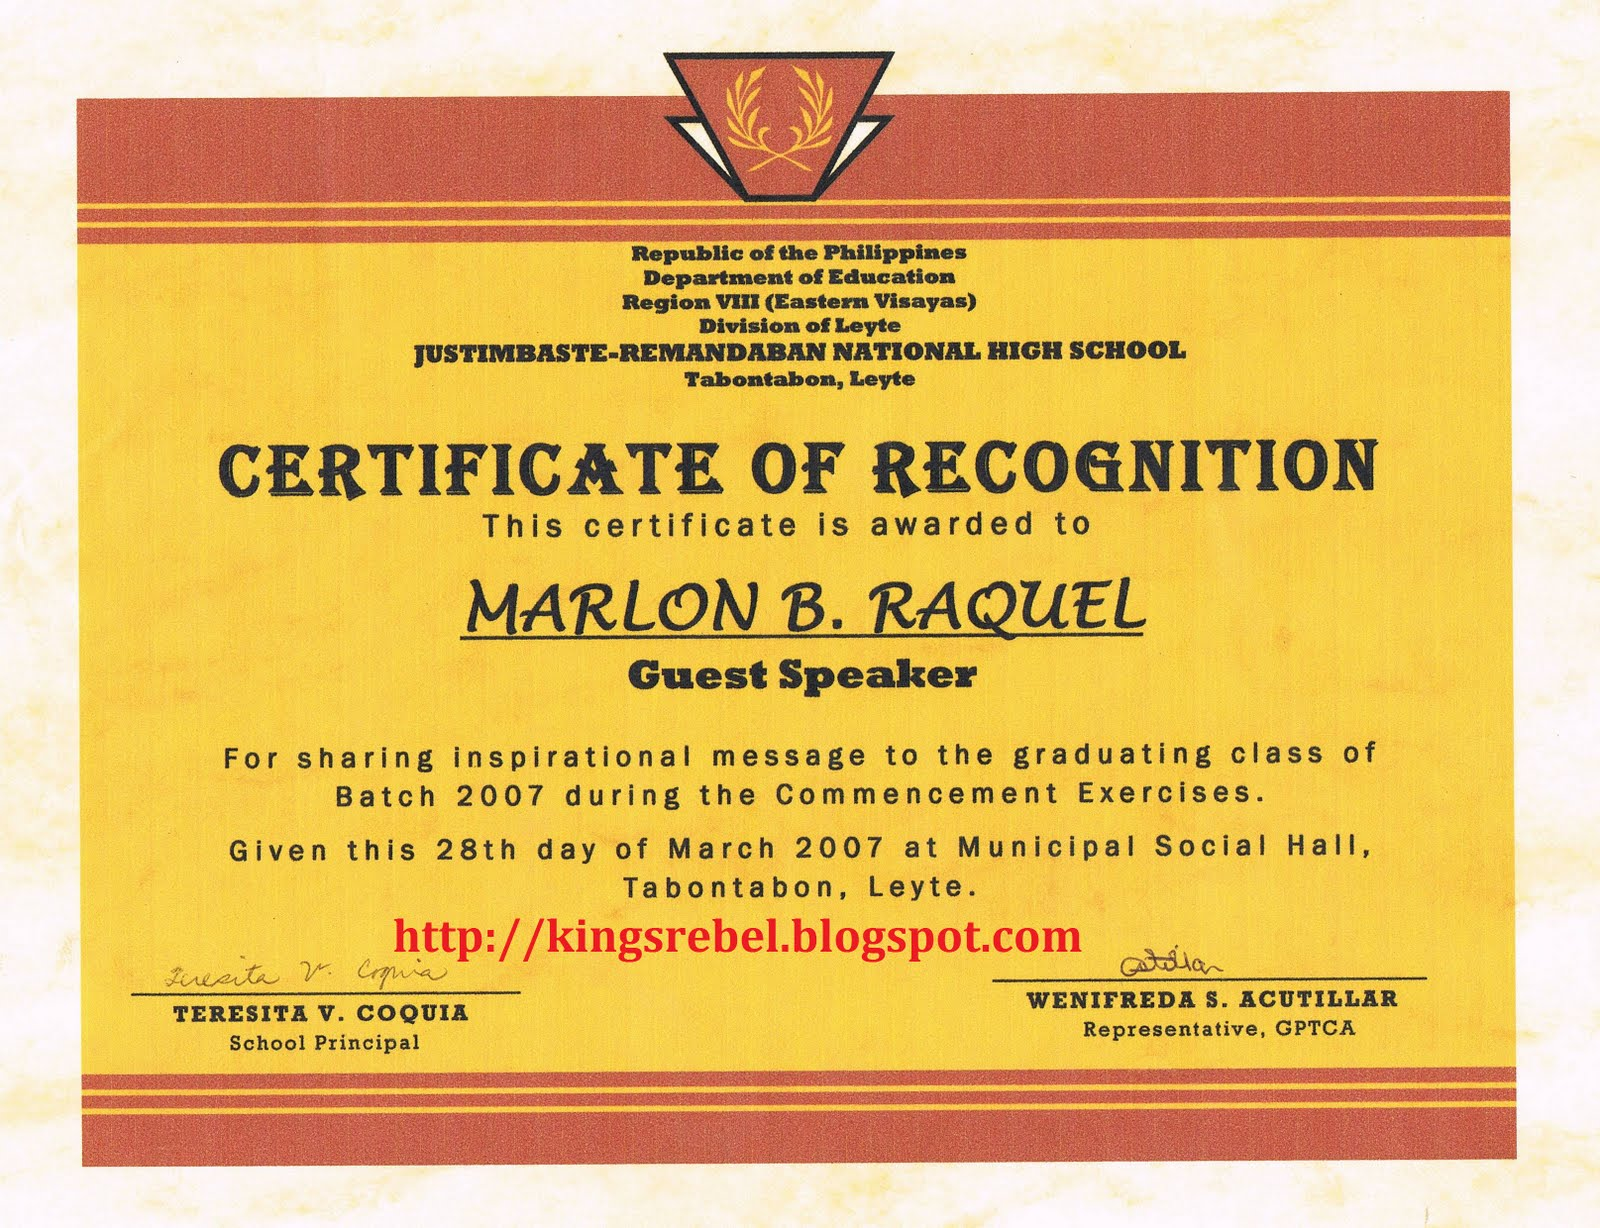 Tidbits And Bytes: Example Of Certificate Of Appreciation   Guest Speaker,  2007 Commencement Exercises Of Justimbaste Remandaban National High School  Certificate Of Appreciation Wordings